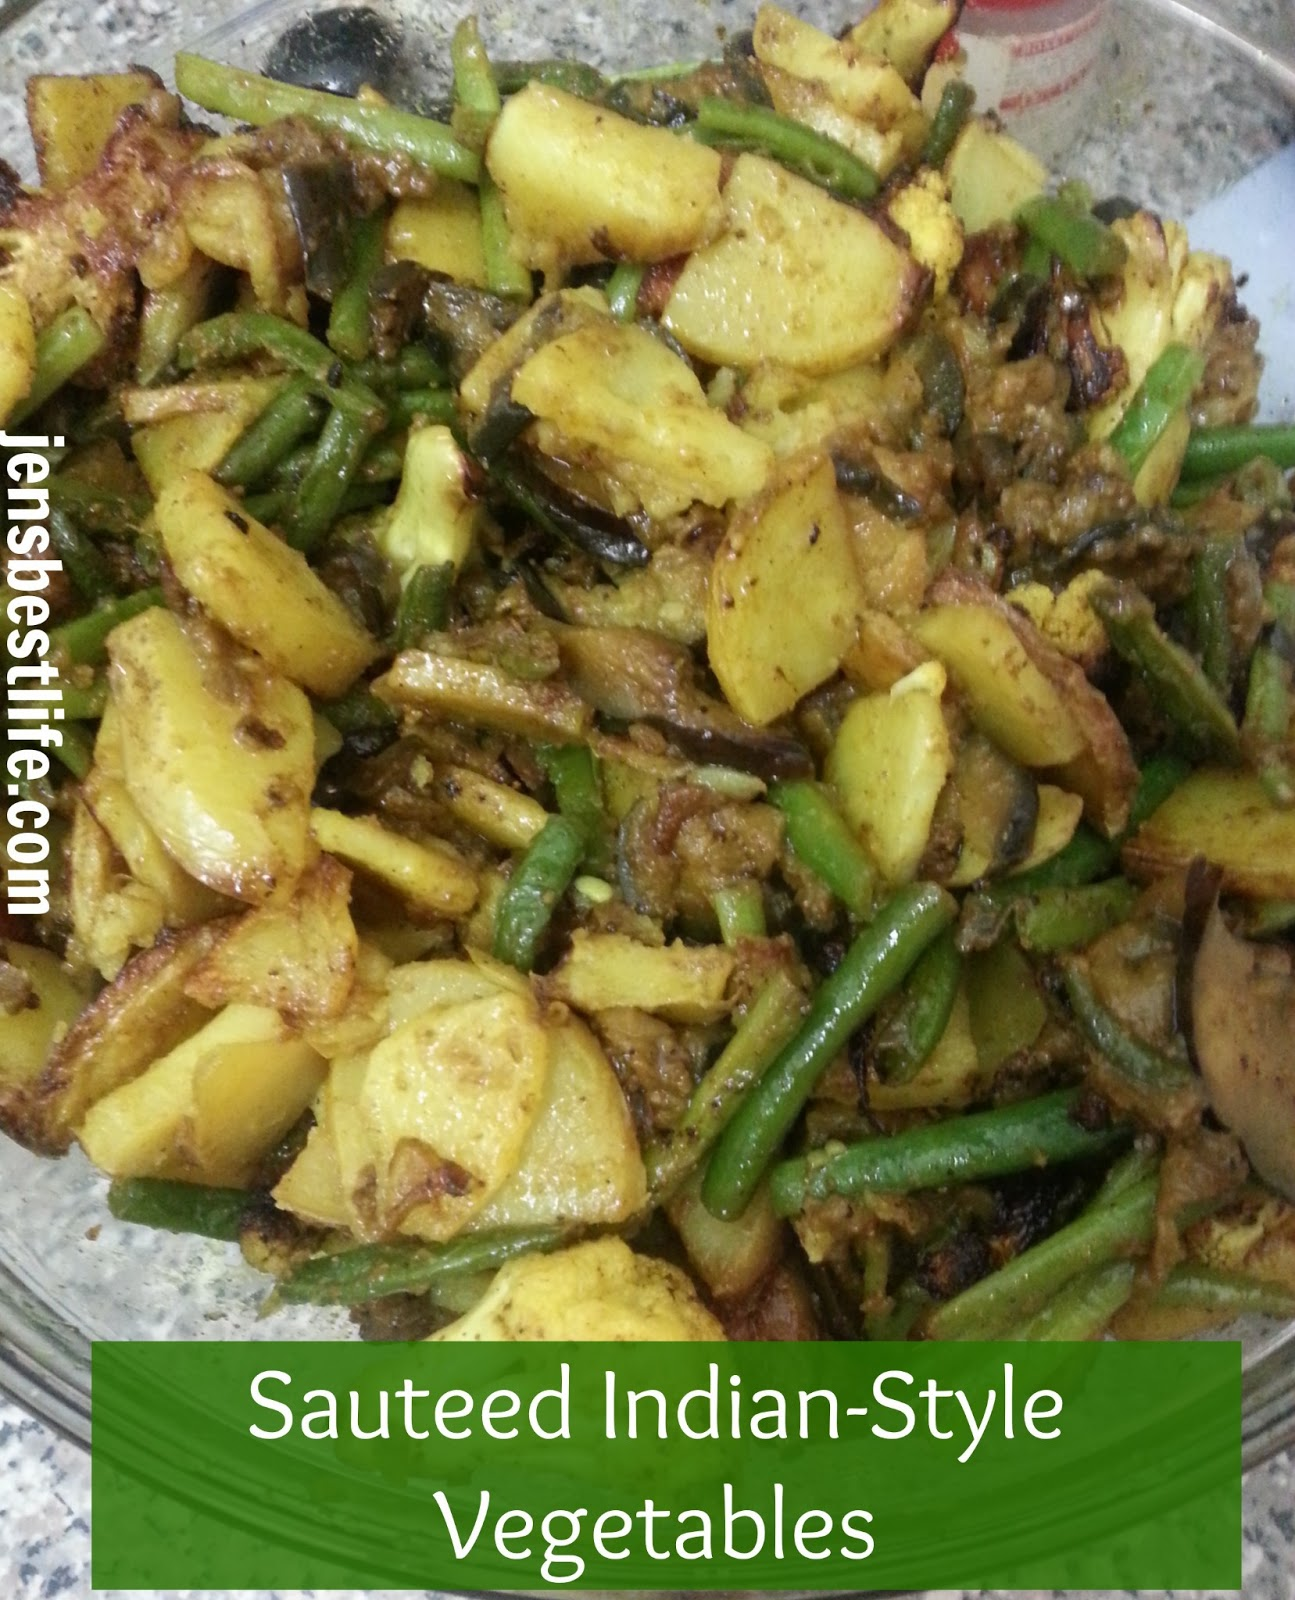 Jens best life easy indian vegetables recipe forumfinder Gallery